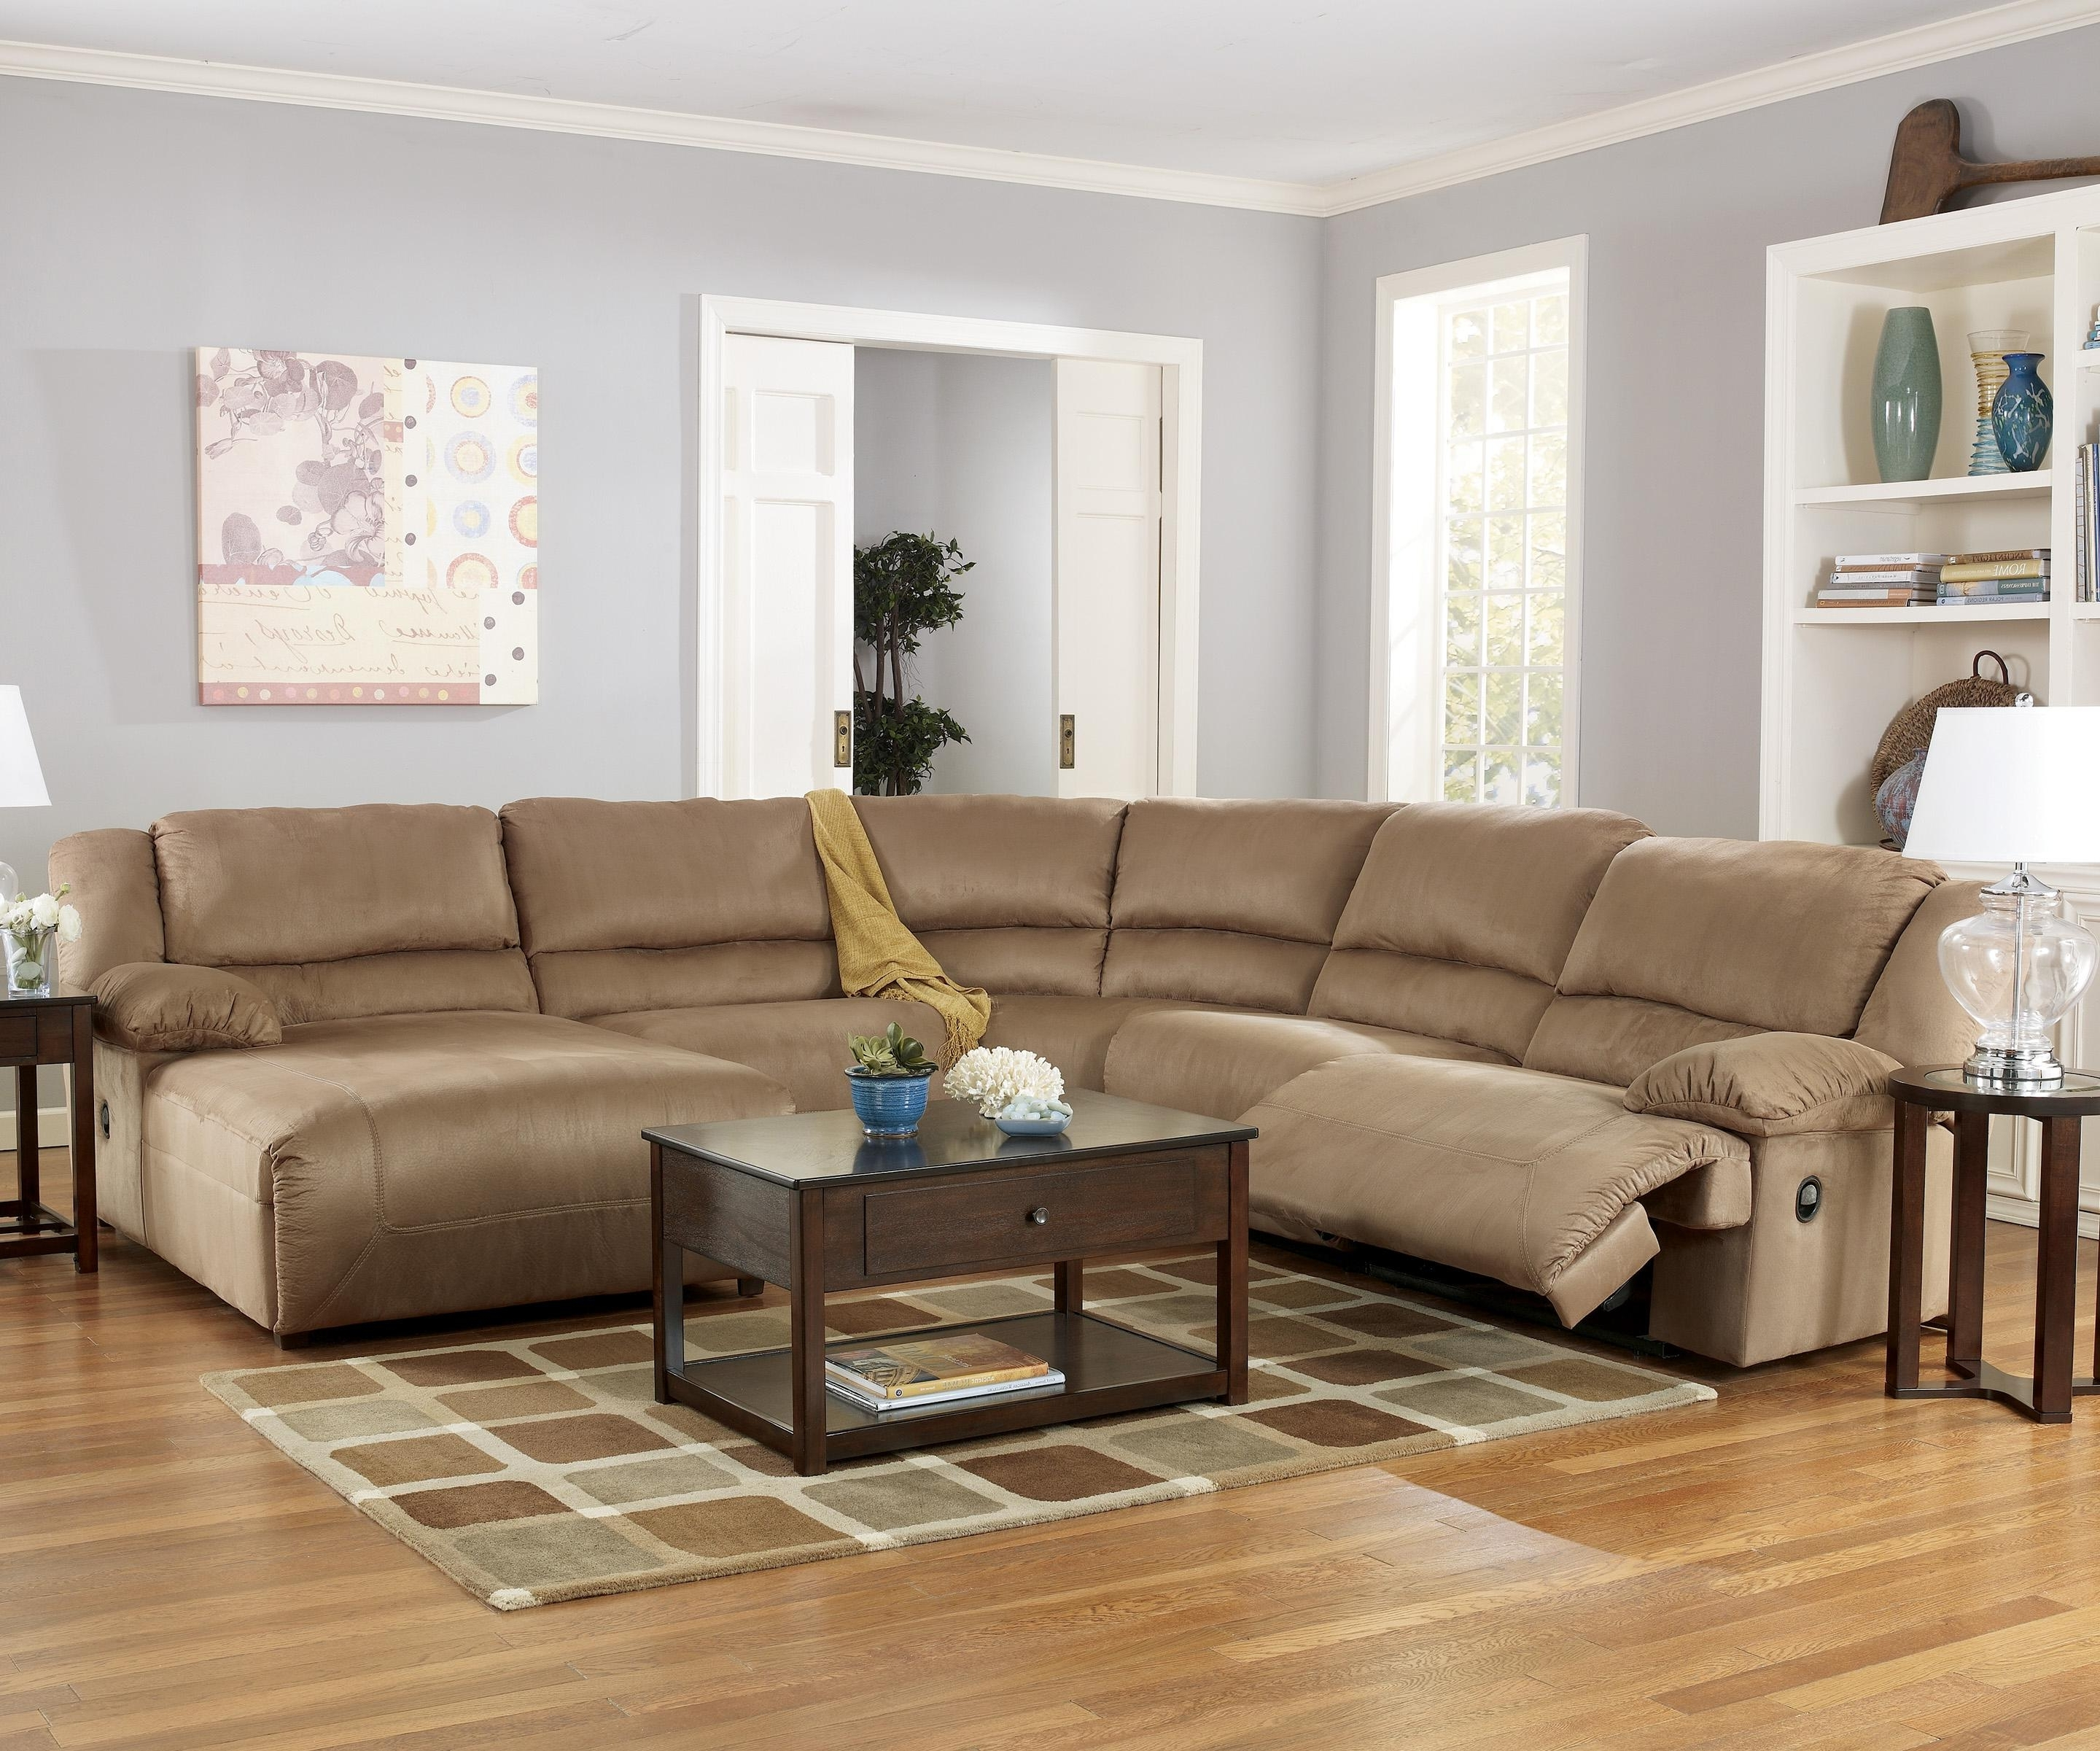 Sectional Sofas Under 300 In Favorite Orlando Sectional Sofas (View 14 of 20)